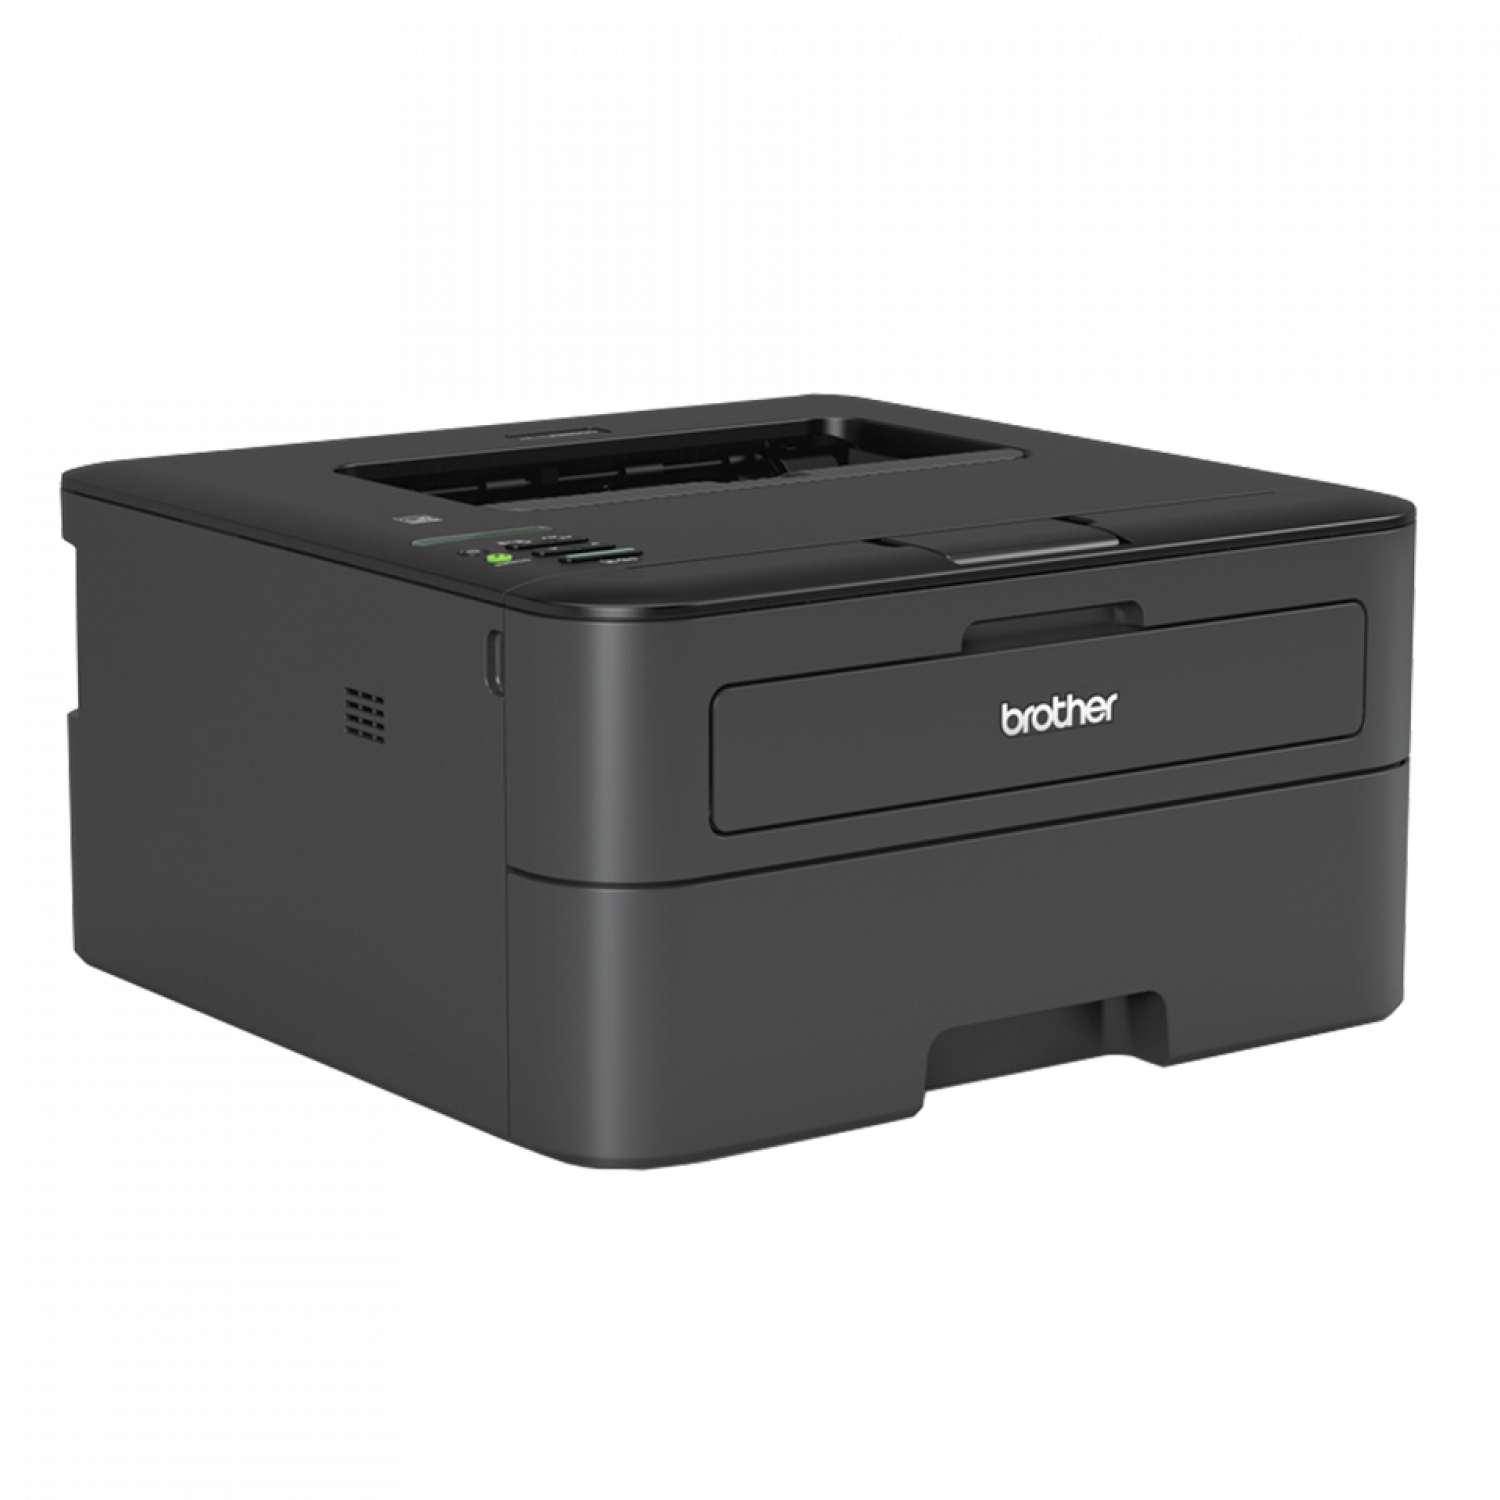 hl-l2360dw-brother-impresora-laser-compratecno